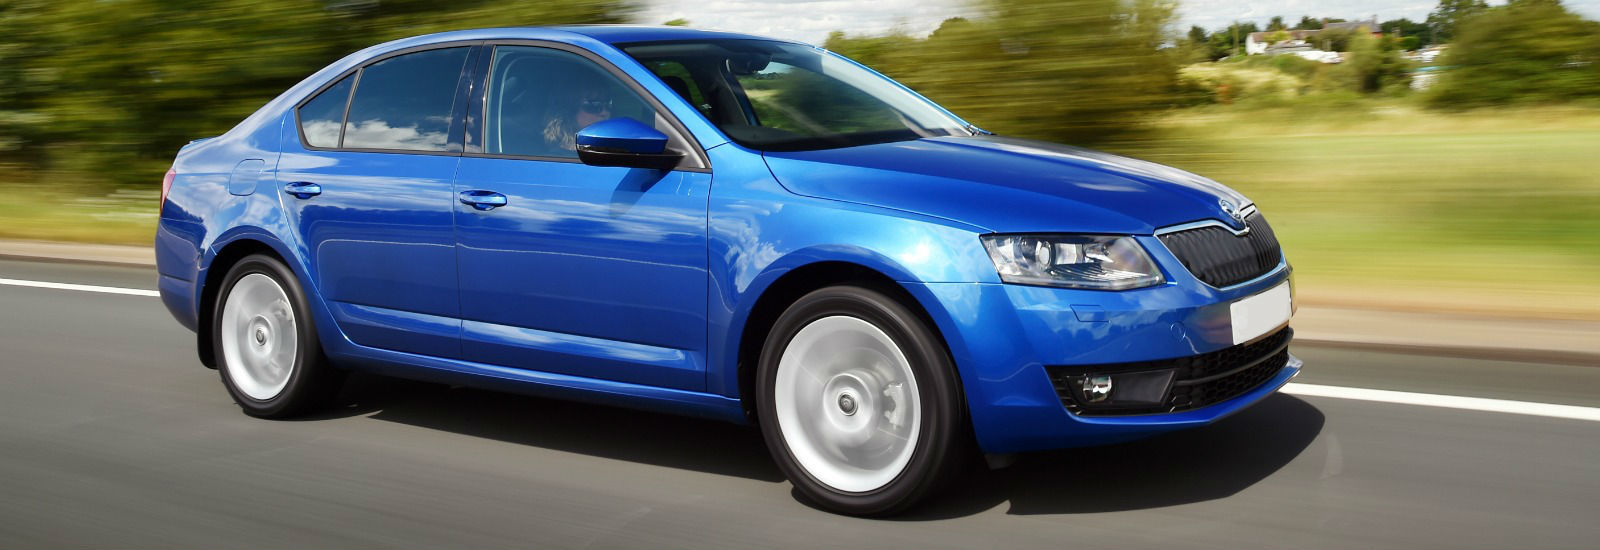 Carwow Used Cars For Sale Uk